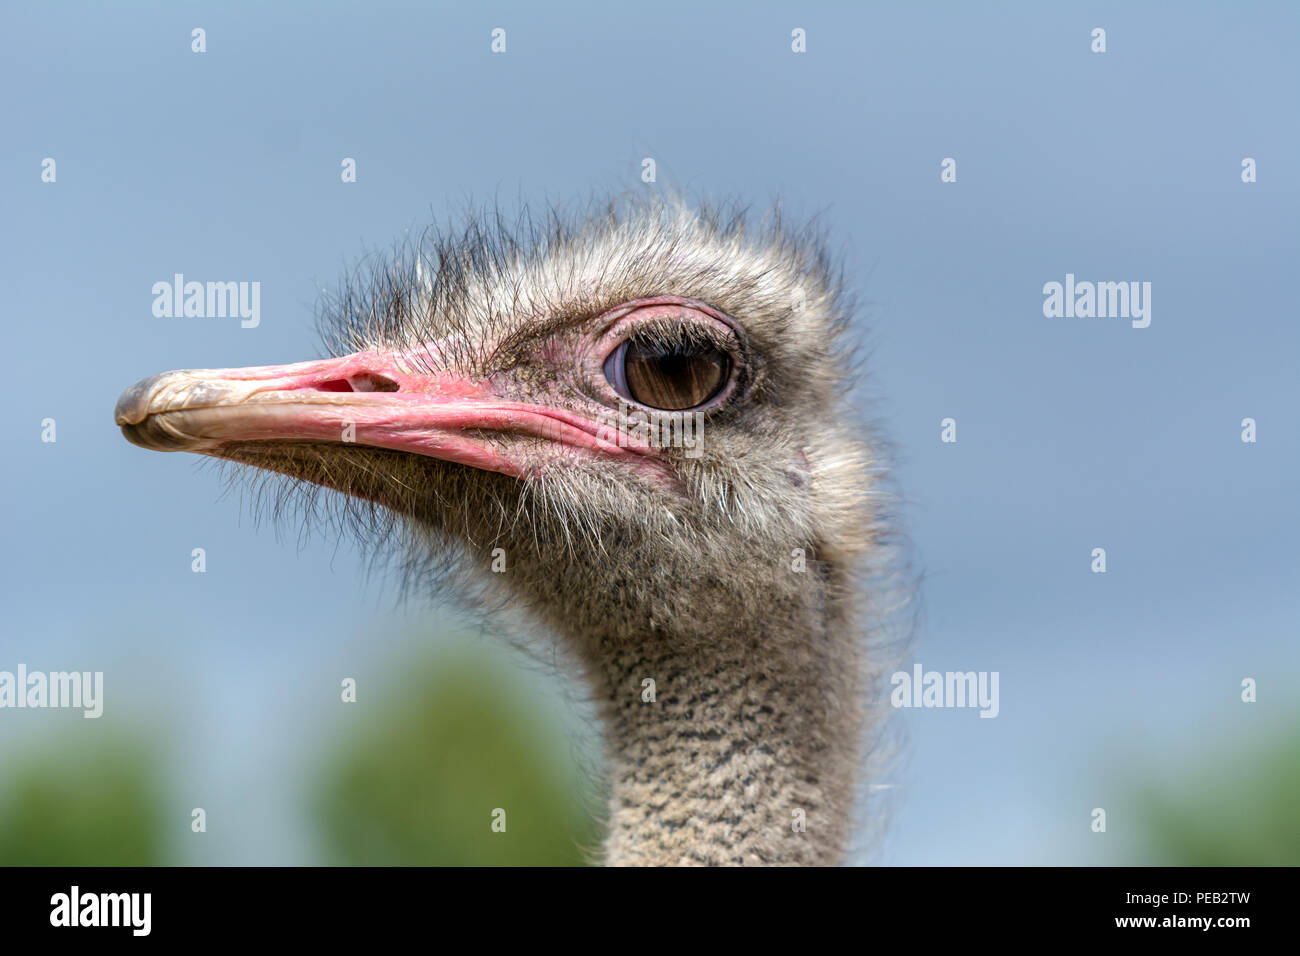 The head of an ostrich closeup on a blue background. Stock Photo